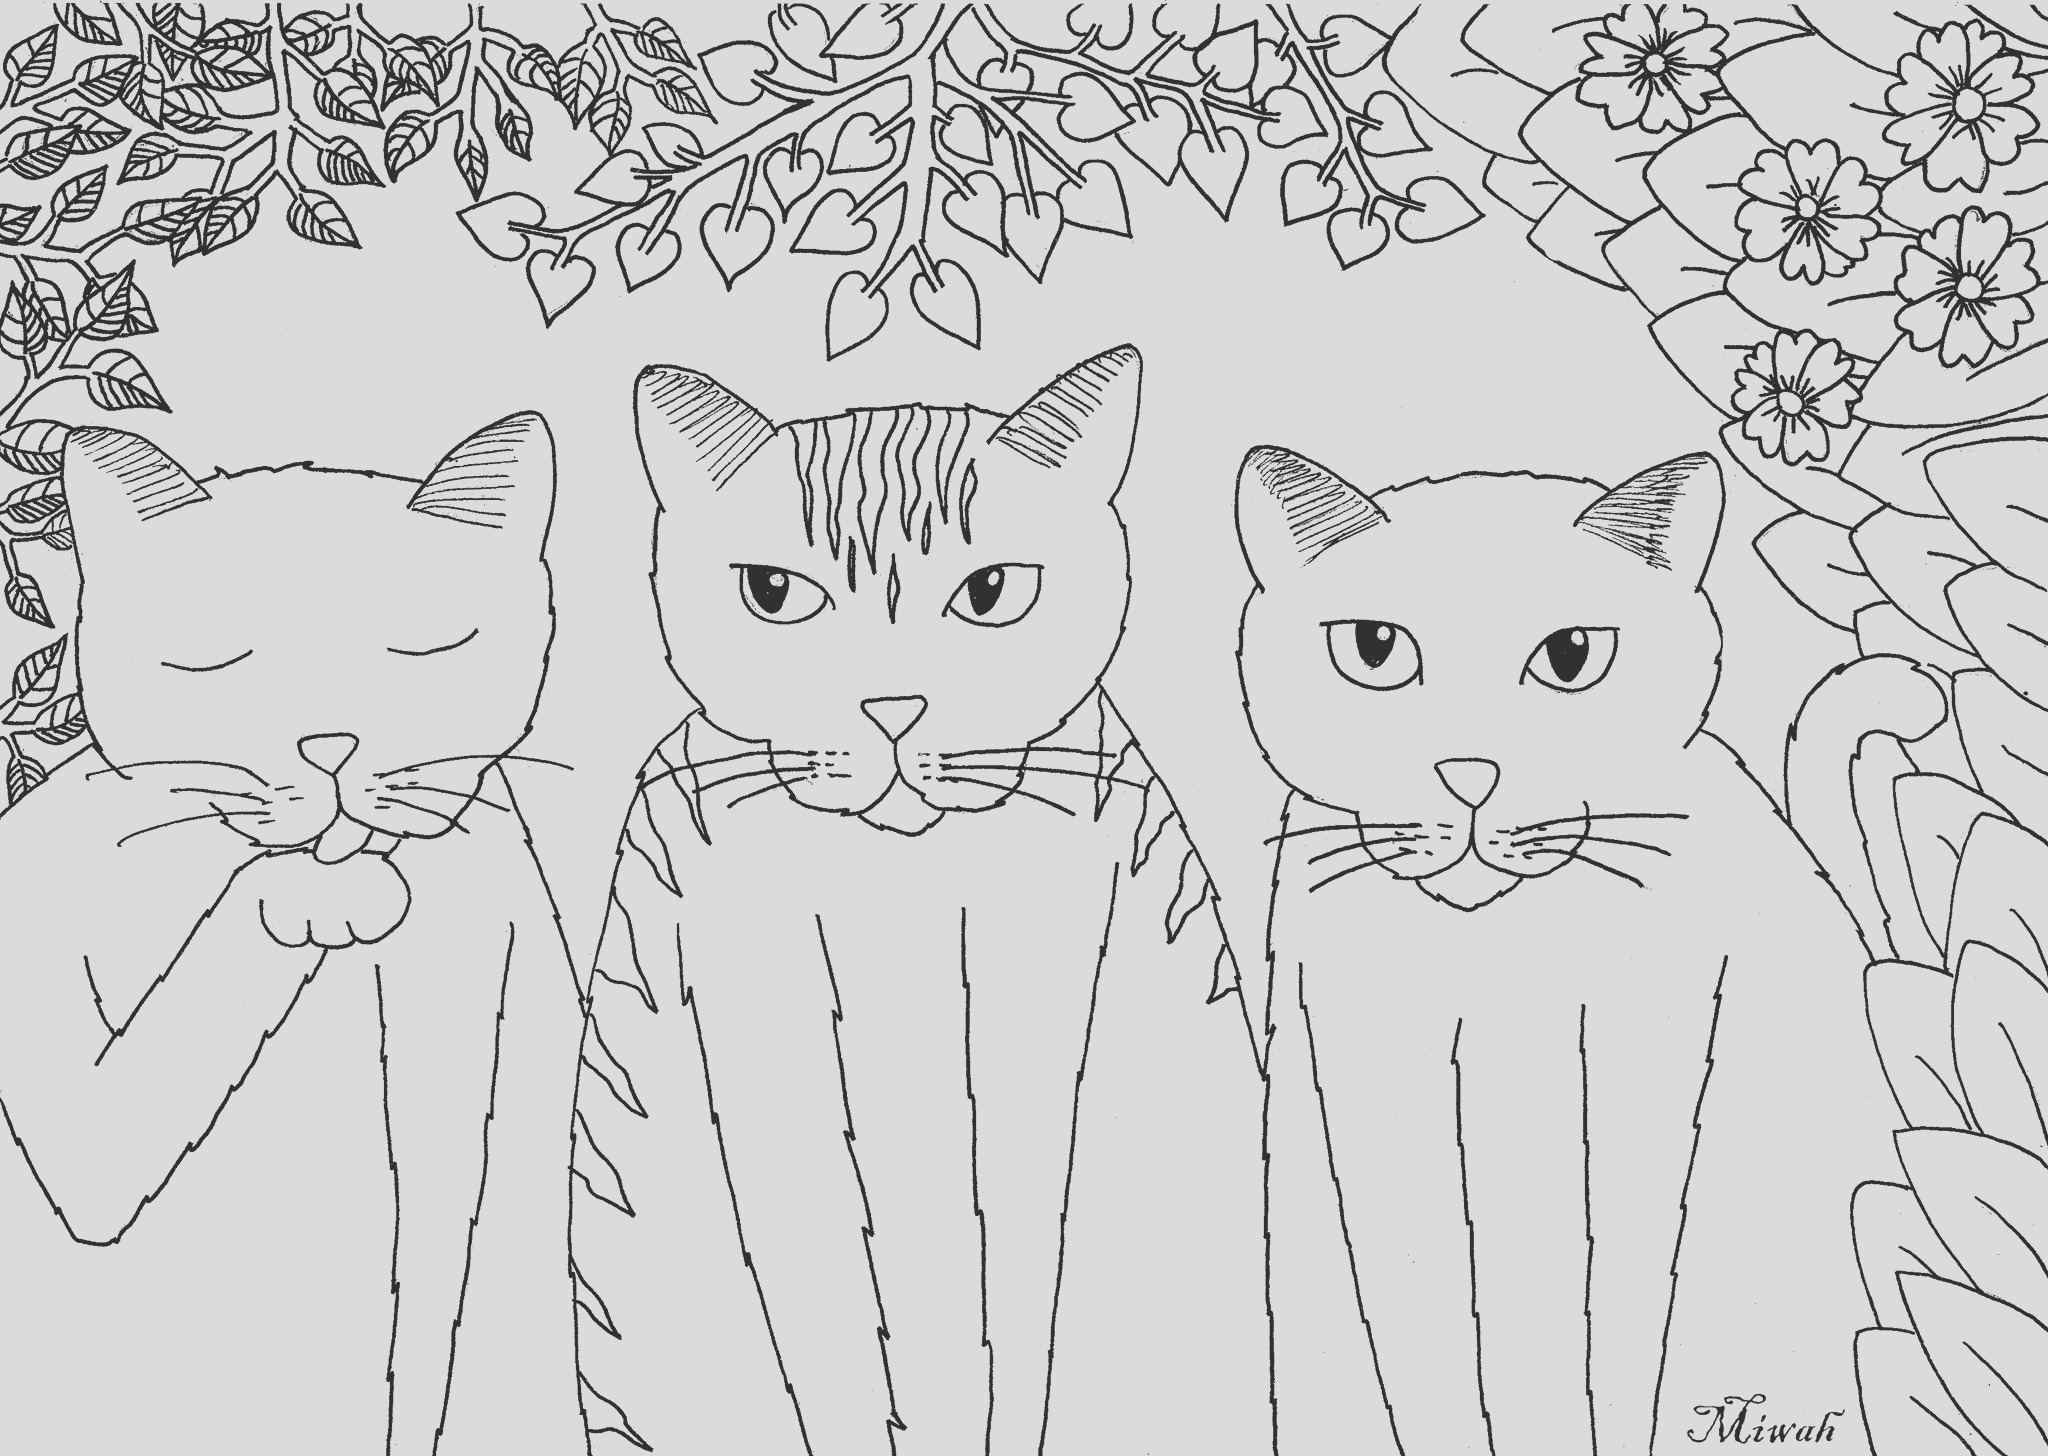 image=cats coloring tree little funny cats by miwah 3